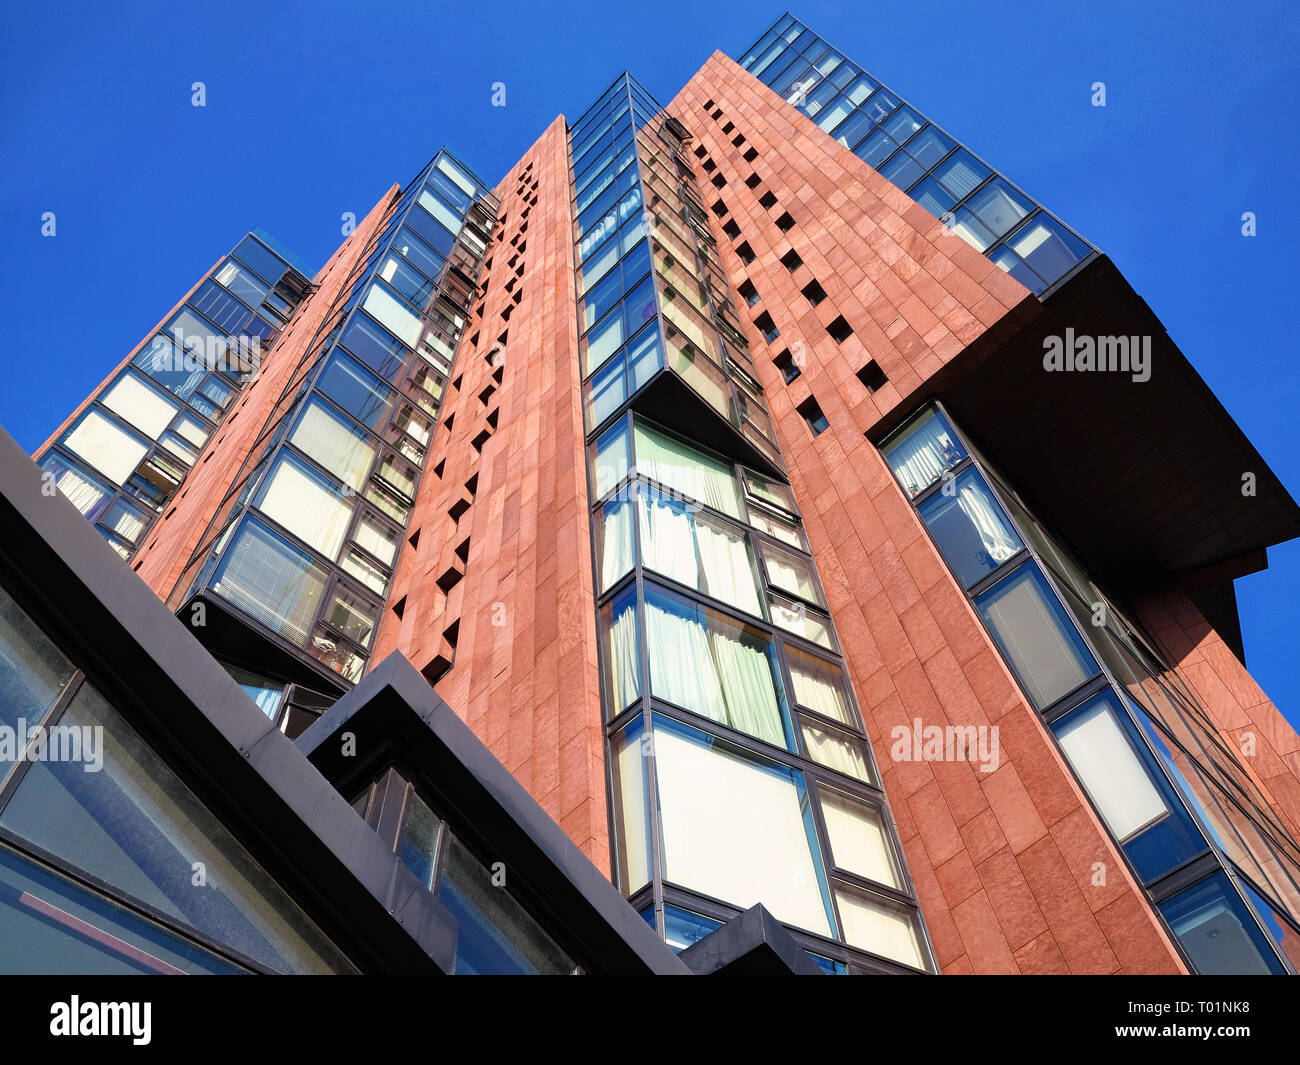 Looking up at a residential tower block near the Ashton Canal, Manchester - Stock Image